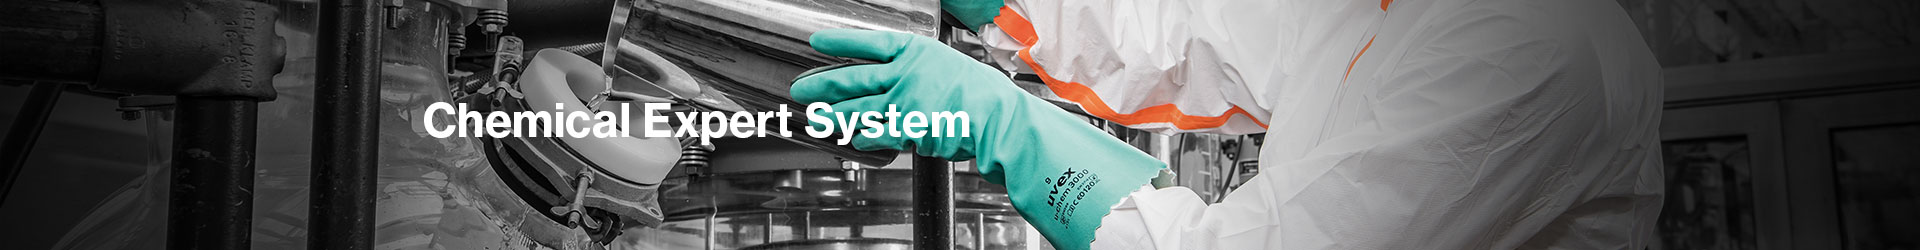 uvex Chemical Expert System